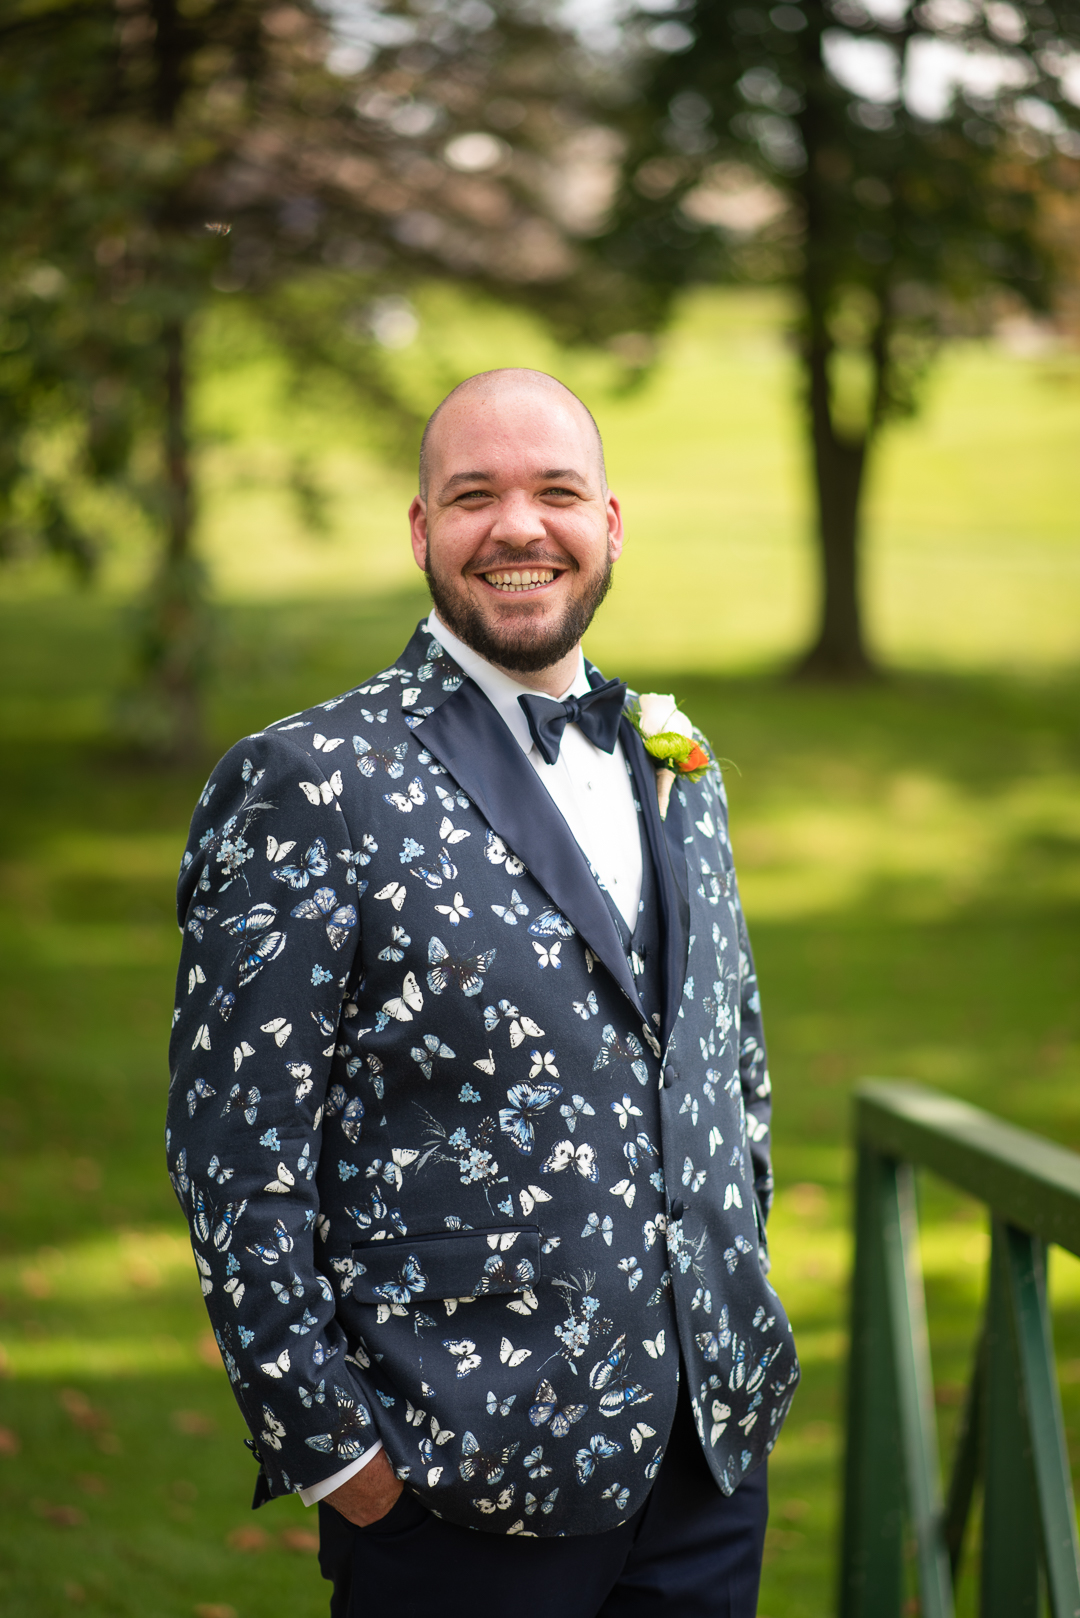 North Hills country club groom